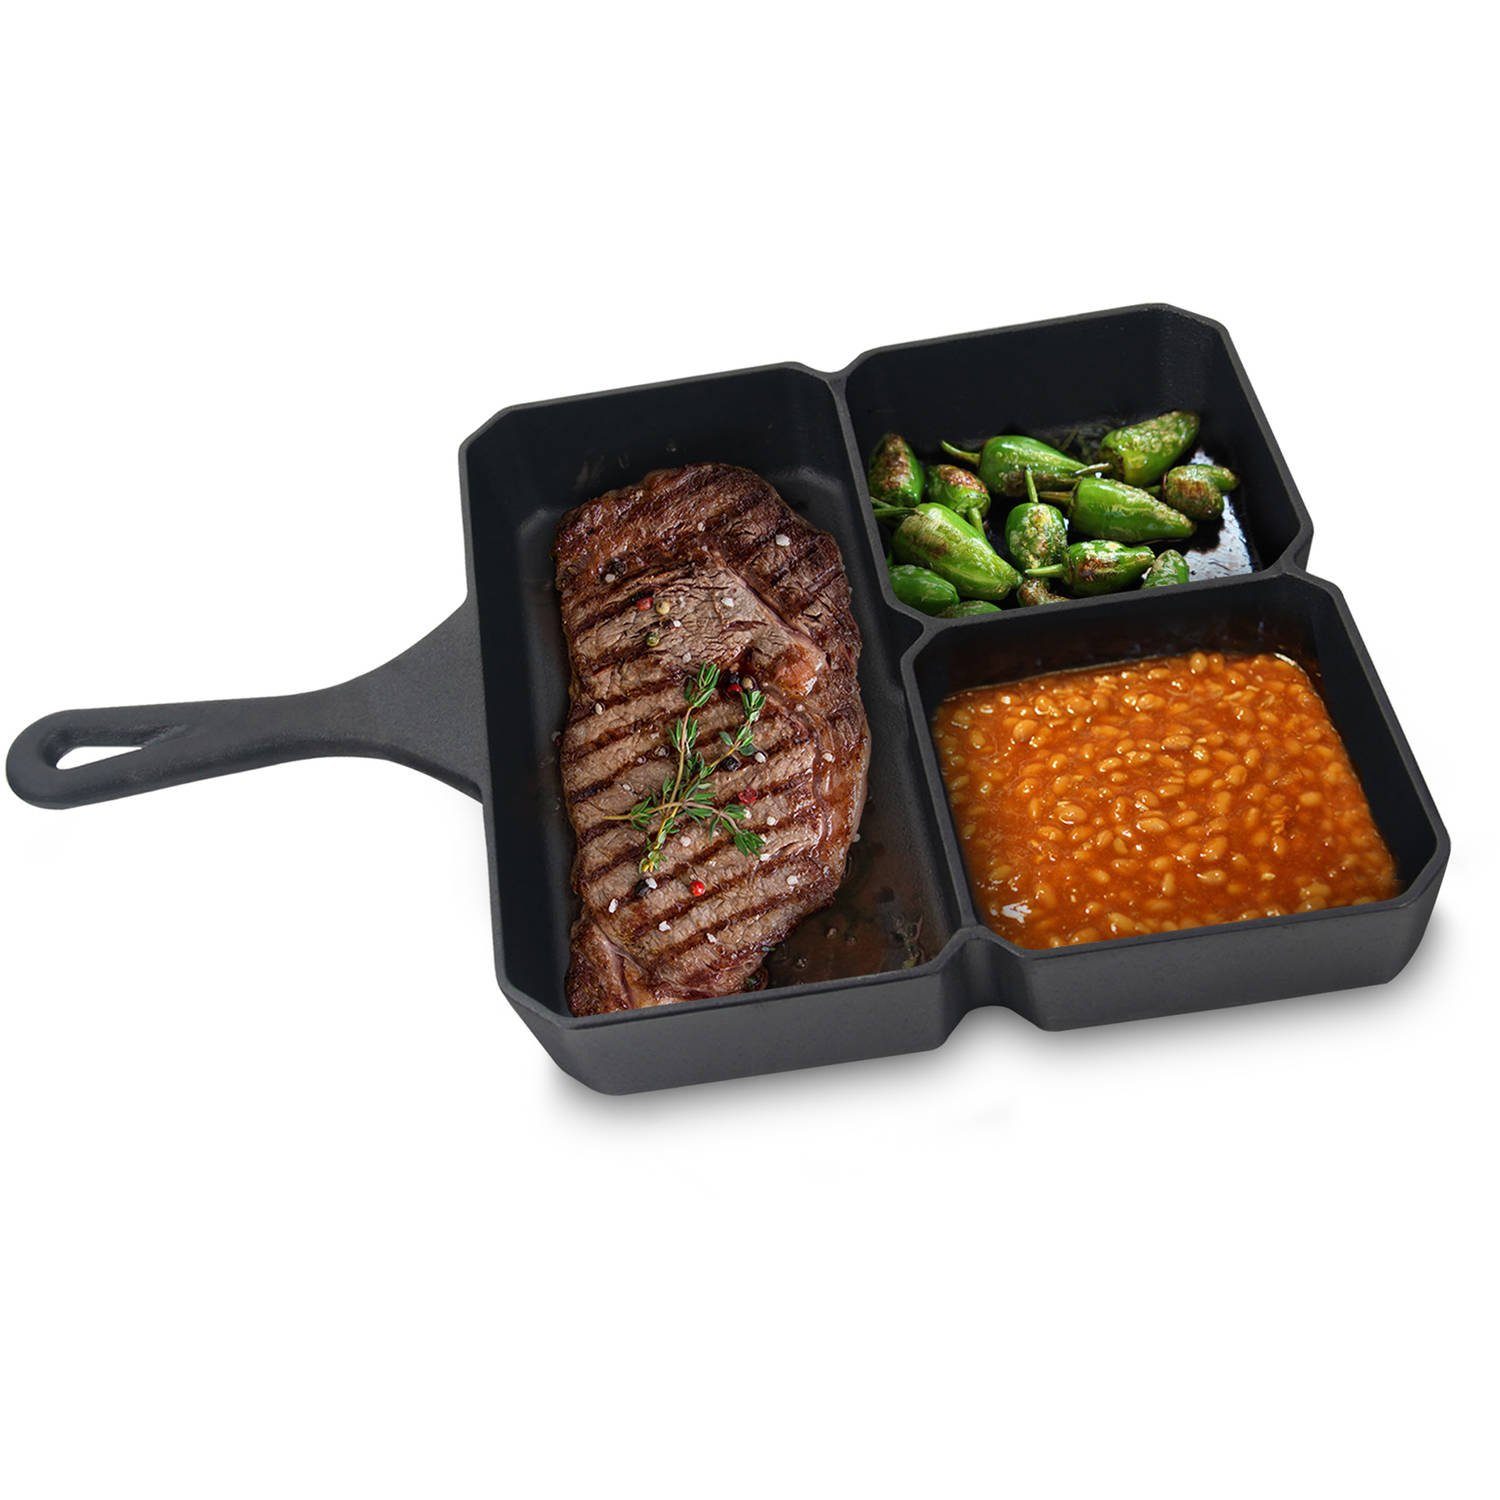 Jim Beam Pre Seasoned Heavy Duty Construction 9'' Cast Iron 3 Compartment Square Skillet for Superior Heat Retention and even Cooking